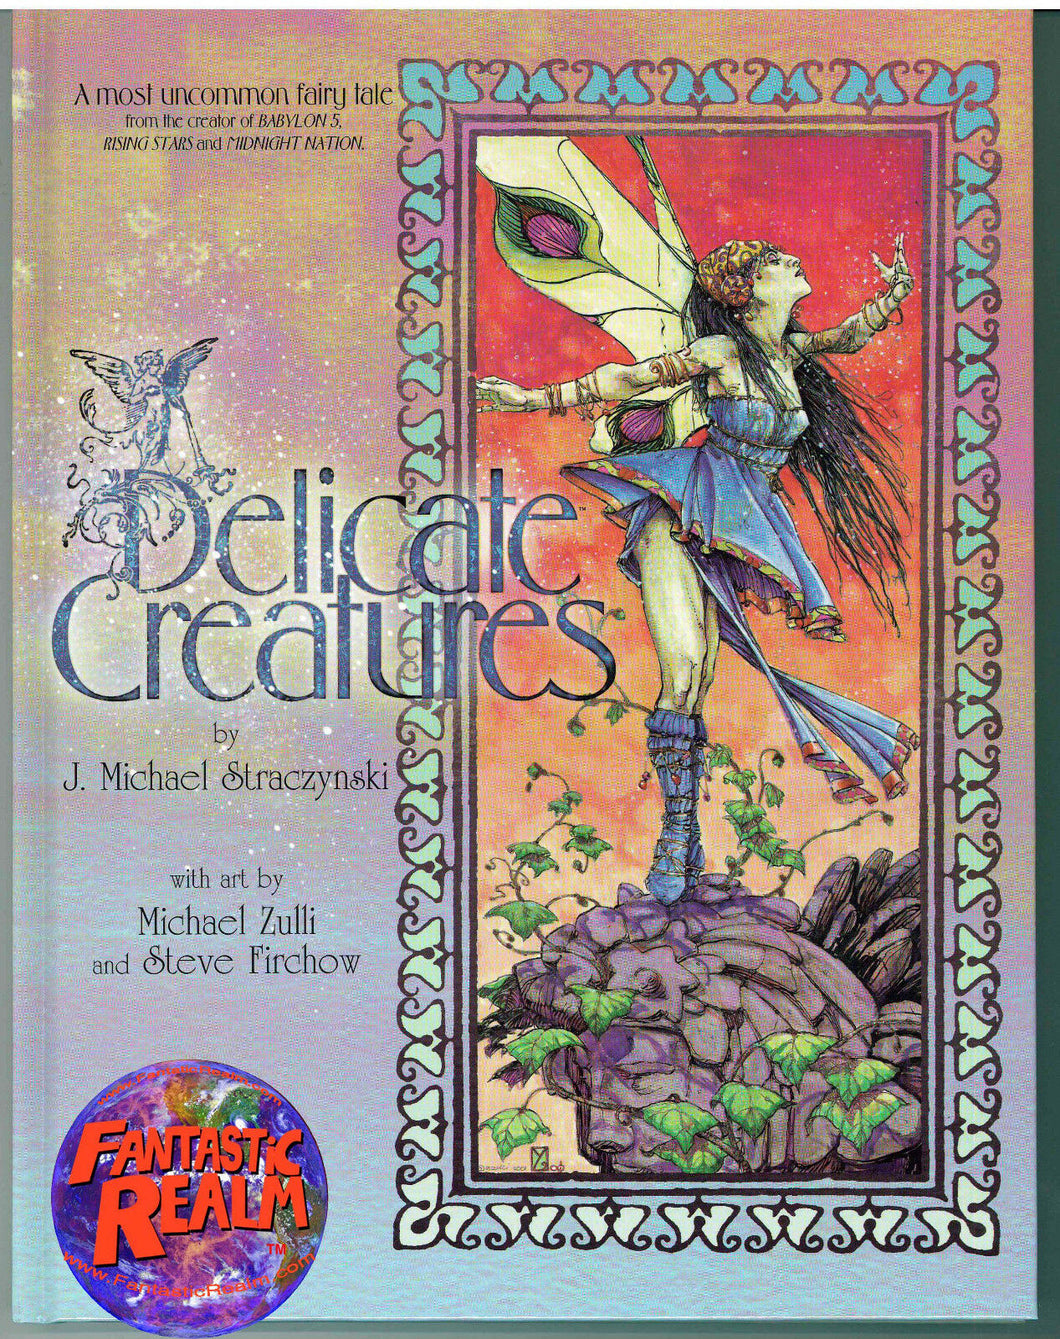 DELICATE CREATURES HARD COVER BY J. MICHAEL STRACZYNSKI TOP COW COMICS